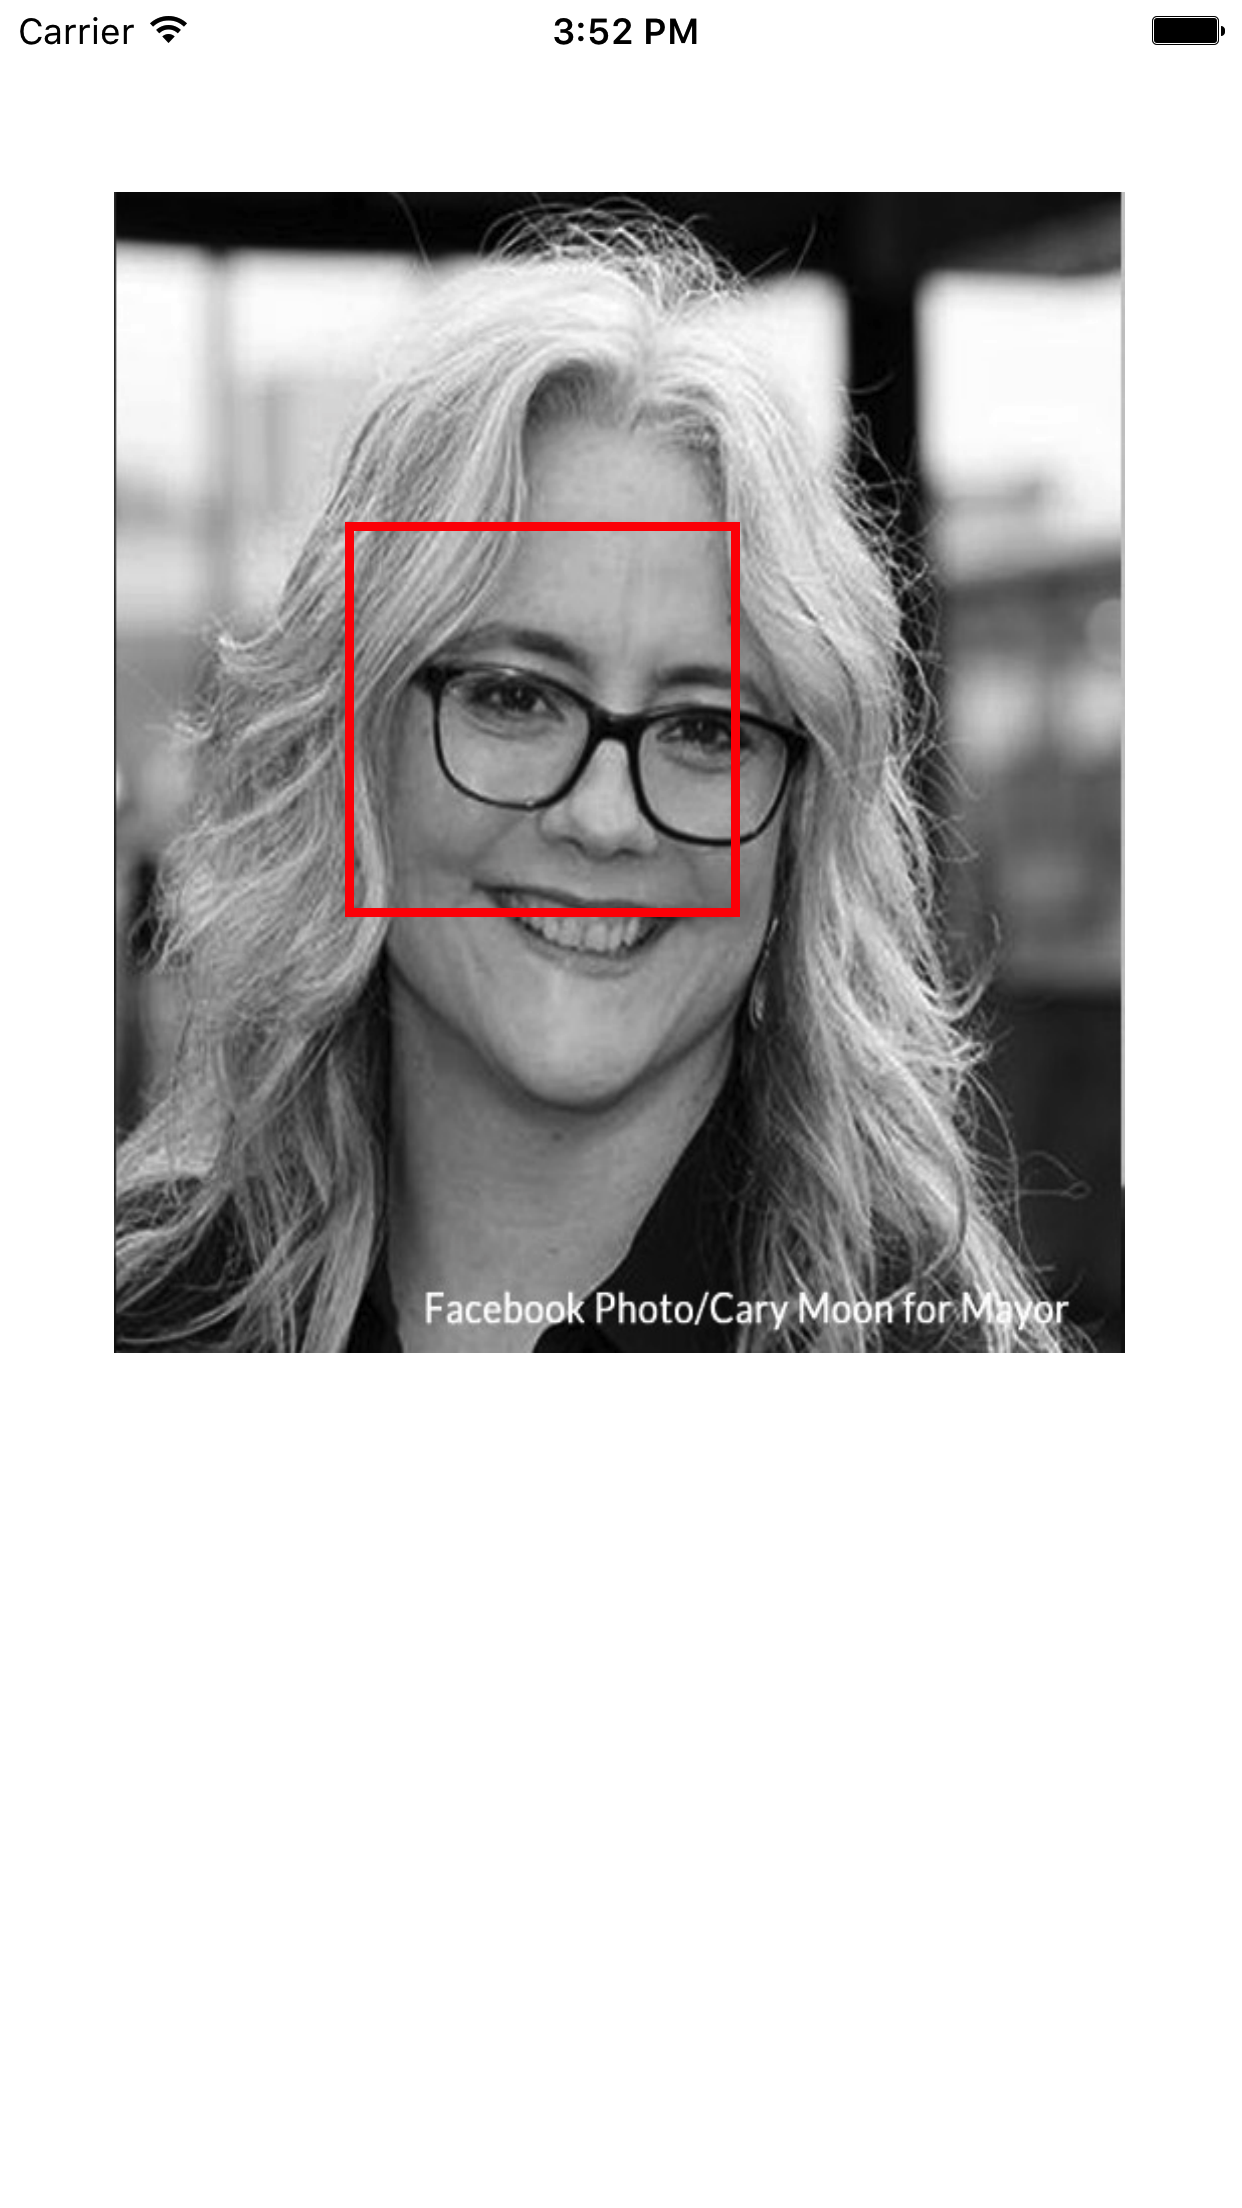 Implement Face Detection Feature in iOS Swift Using Core